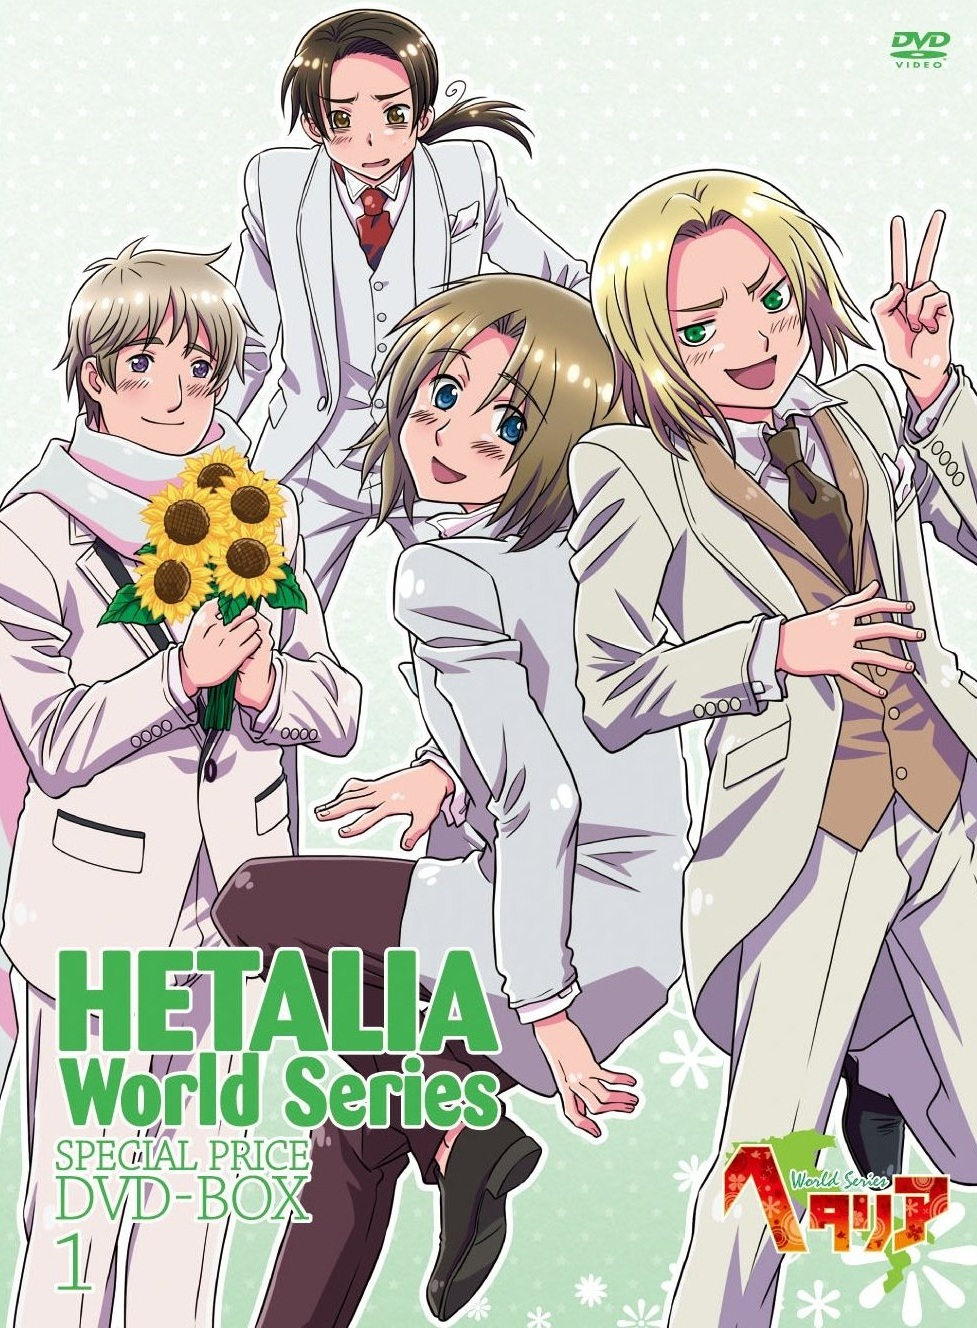 Hetalia World Series Extra Episodes - Hetalia World Series Extra Episodes | Hetalia World Series Specials | Hetalia=Fantasia